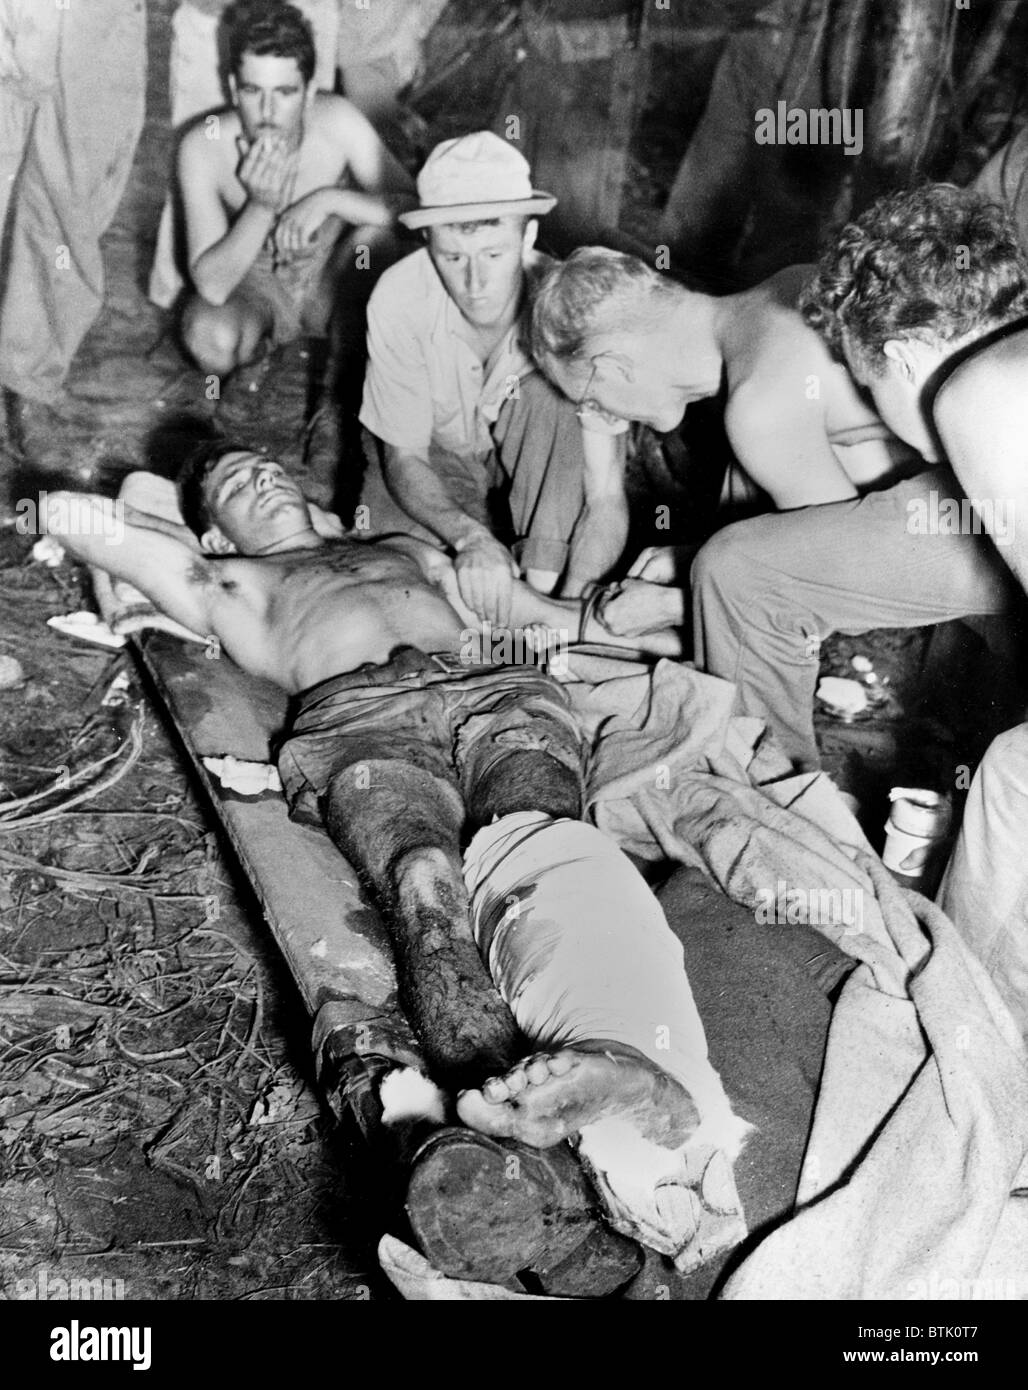 Blood Transfusion. A wounded American soldier gets a blood transfusion while assistants hover about the improvised - Stock Image